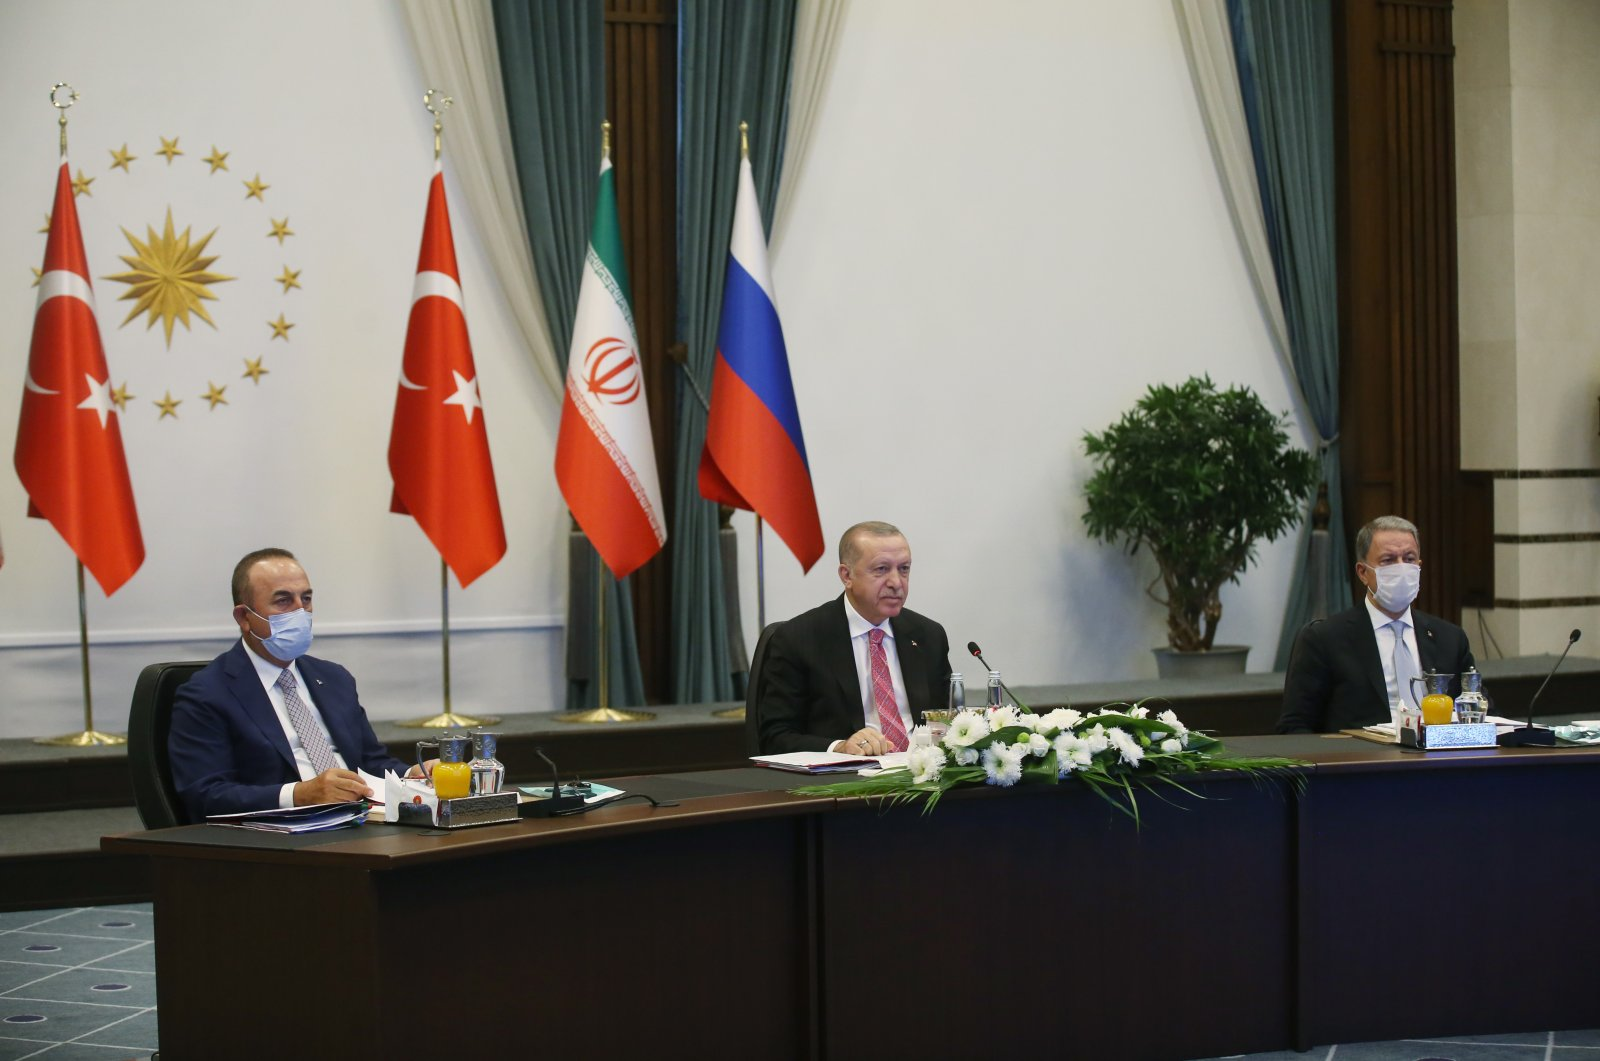 Turkish Foreign Minister Mevlüt Çavuşoğlu (L), President Recep Tayyip Erdoğan (C) and Defense Minister Hulusi Akar (R) during the Turkey-Russia-Iran videoconference summit under the Astana process, July 1, 2020. (AA Photo)